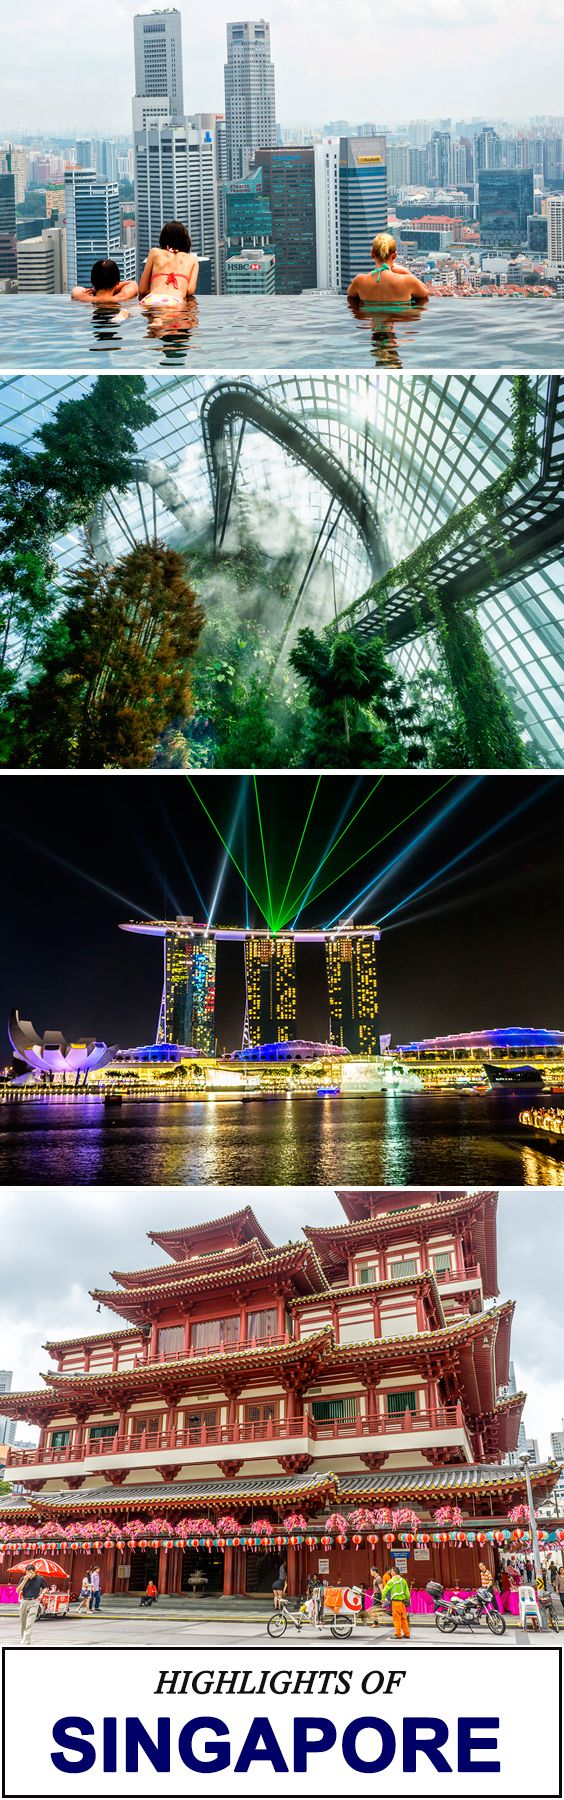 b45db1022d127367d8bf112208d43ff2 - Distance From Marina Bay Sands To Gardens By The Bay